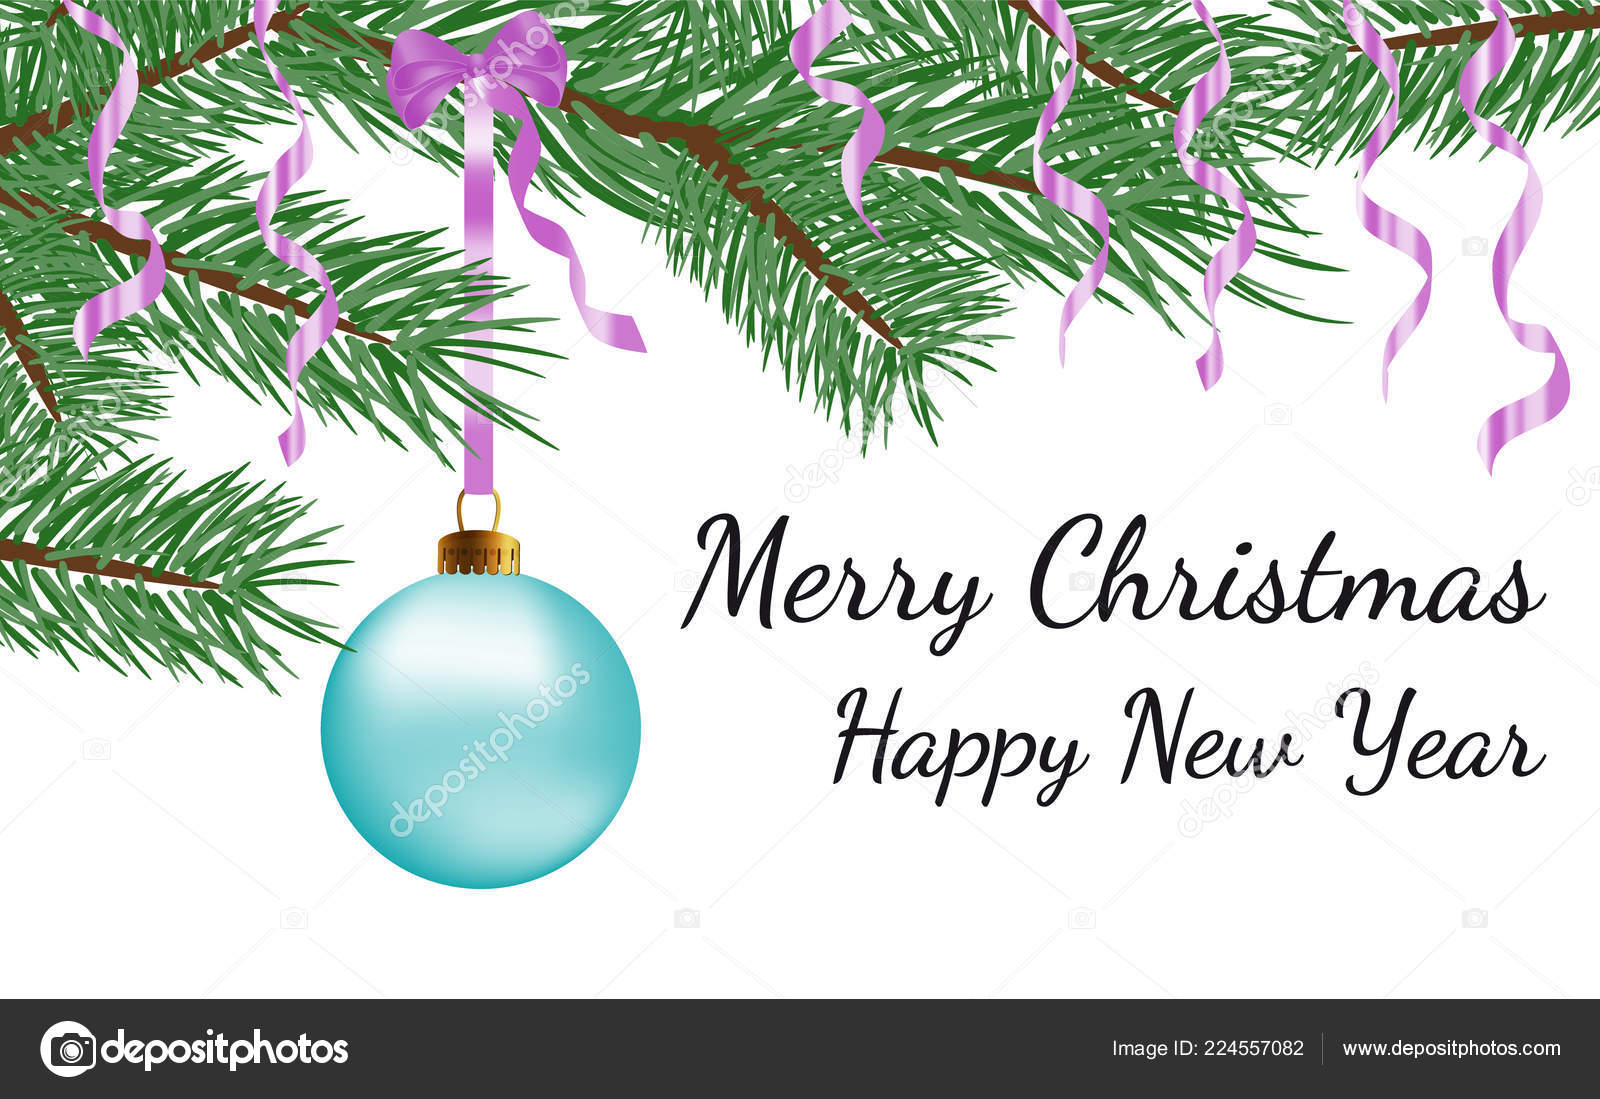 merry christmas happy new year text greeting card design vector stock vector c henkeova 224557082 https depositphotos com 224557082 stock illustration merry christmas happy new year html